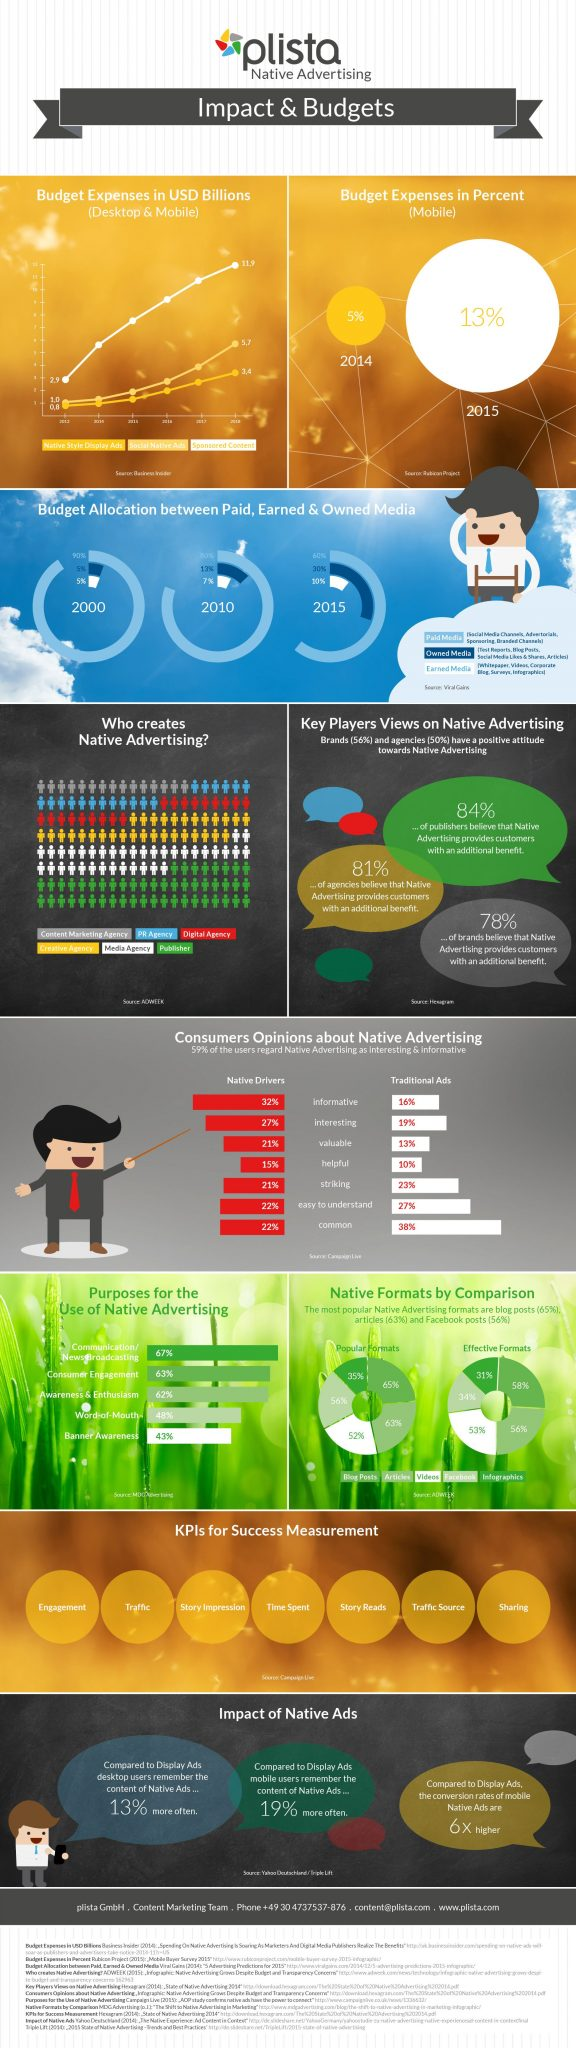 Image 2: Budget expenses in Native Advertising are increasing. The following infographic shows all the relevant key figures from overall budget expenses to the impact of Native Ads.